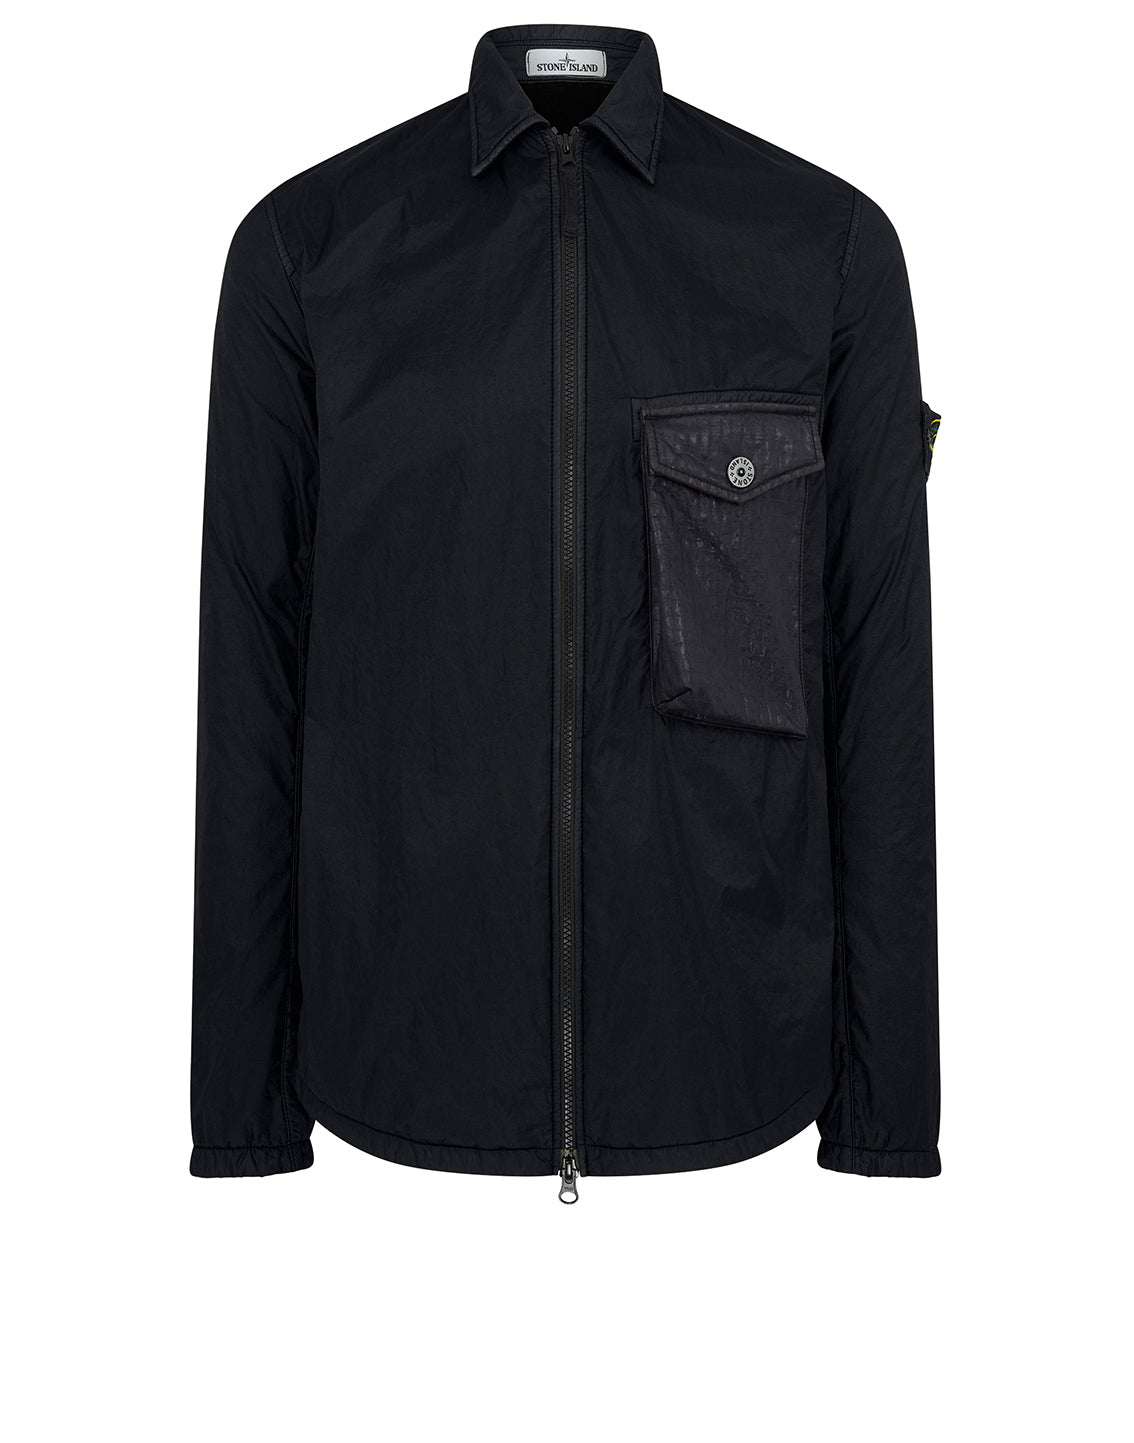 11435 LAMY FLOCK: Overshirt in Black